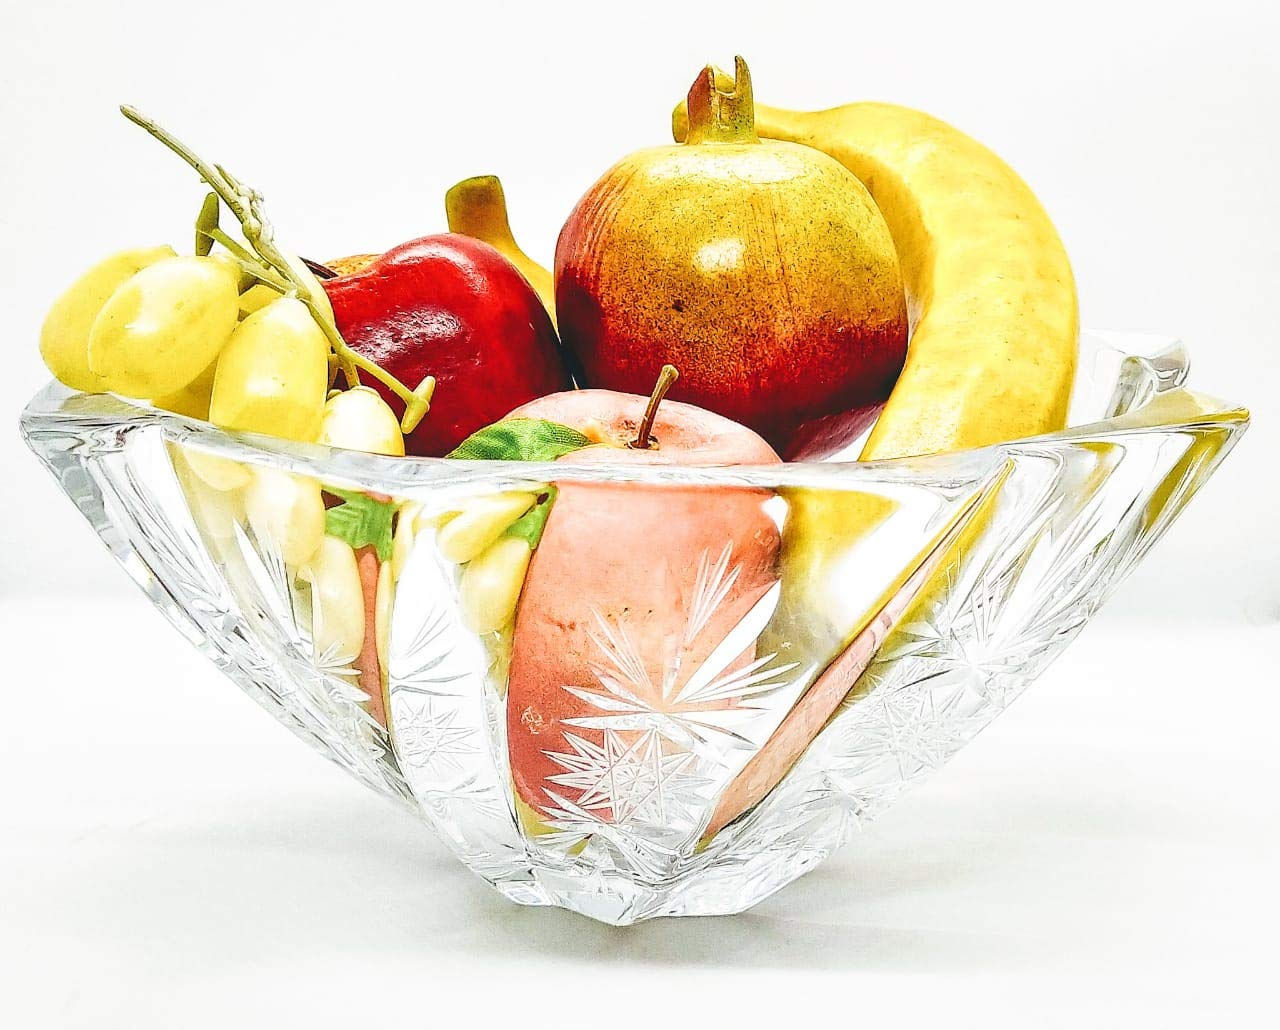 Buy Elido Antique Hand Cut Crystal Glass Fruit Bowl Exclusive Luxury Beautiful Designer For Dining Table Living Room Office Gifting Centerpiece And Wedding Gift Online At Low Prices In India Amazon In